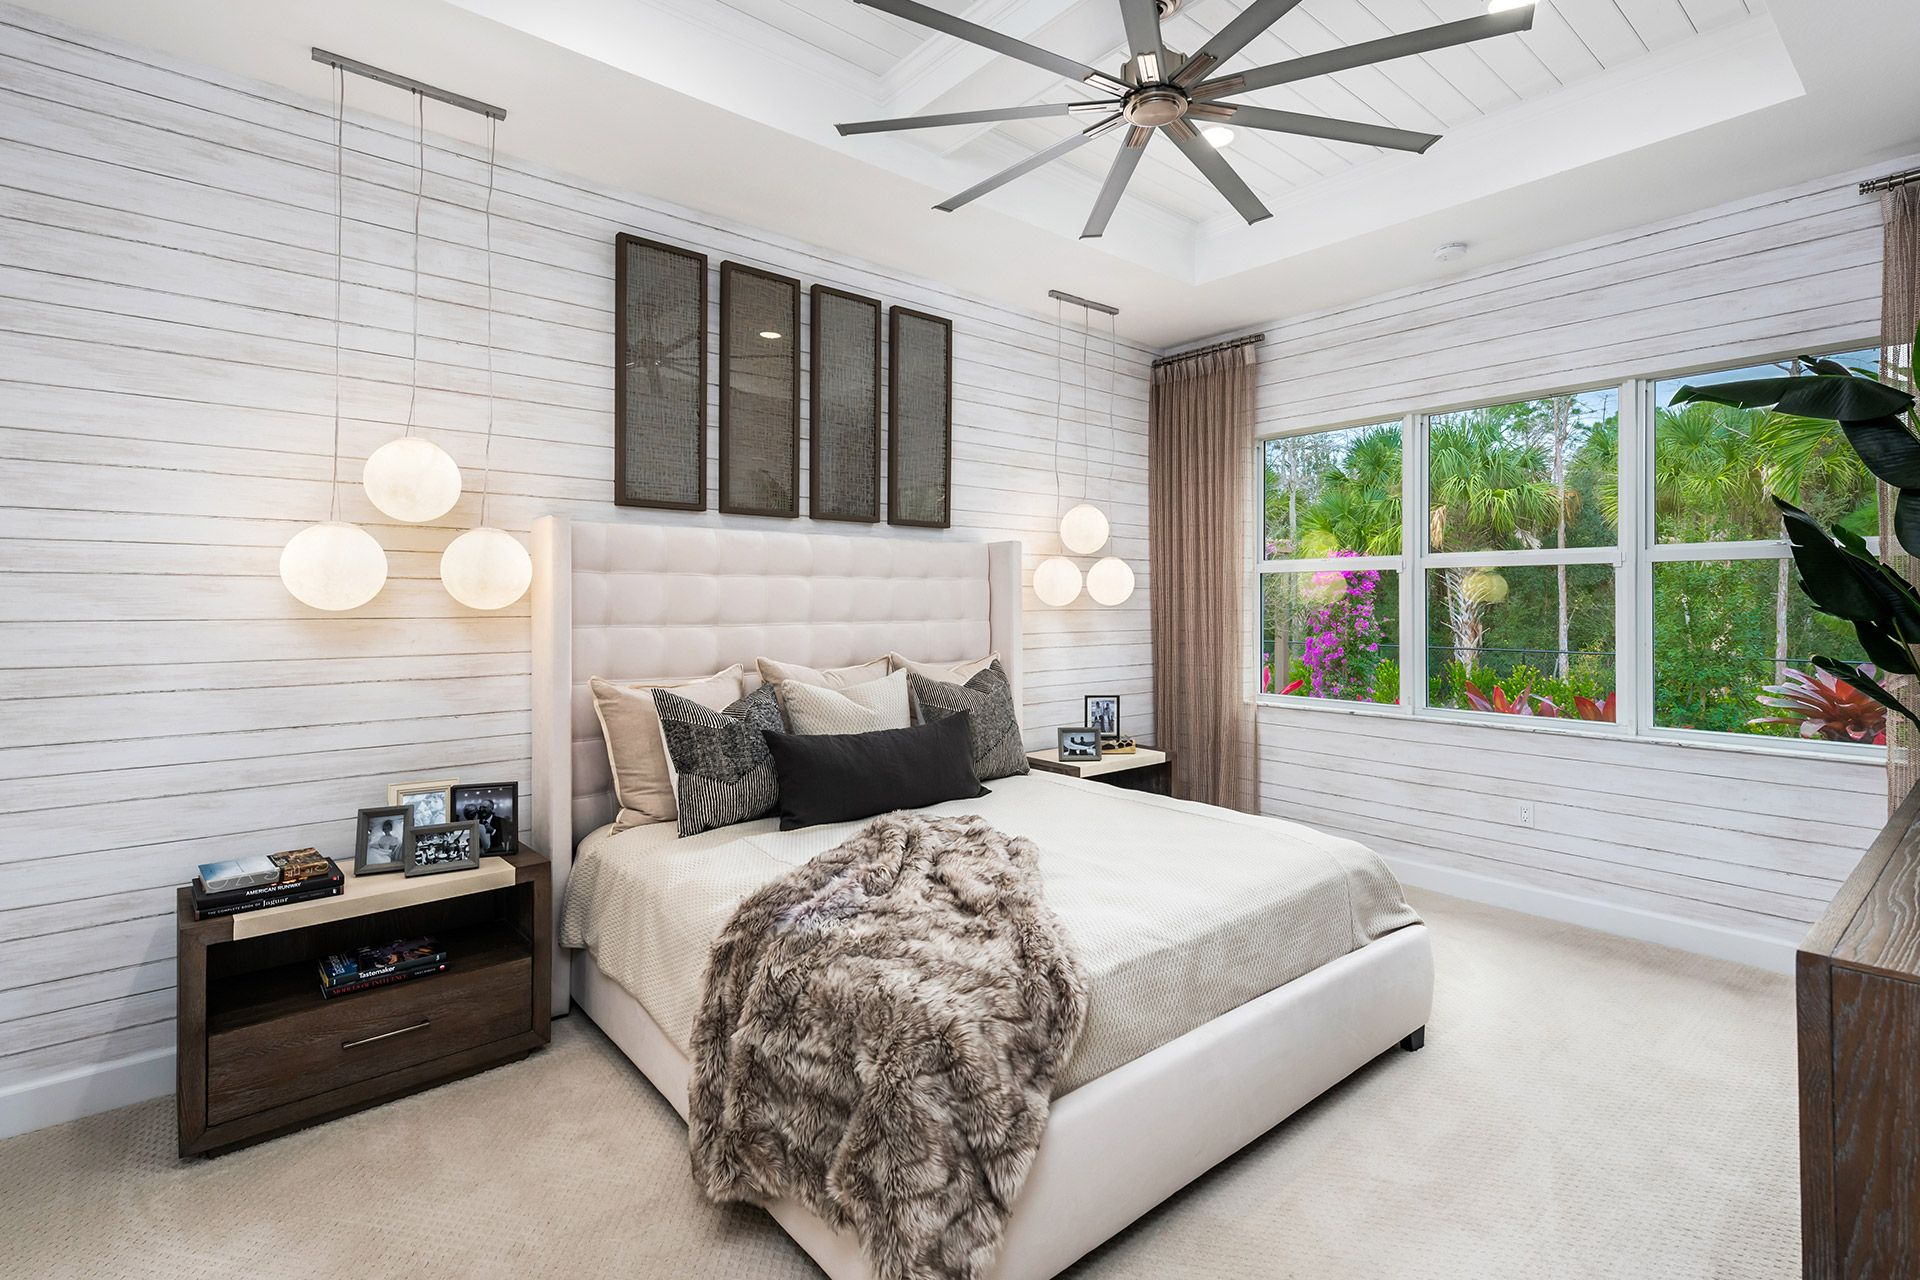 Bedroom featured in the Nautilus By GL Homes in Naples, FL